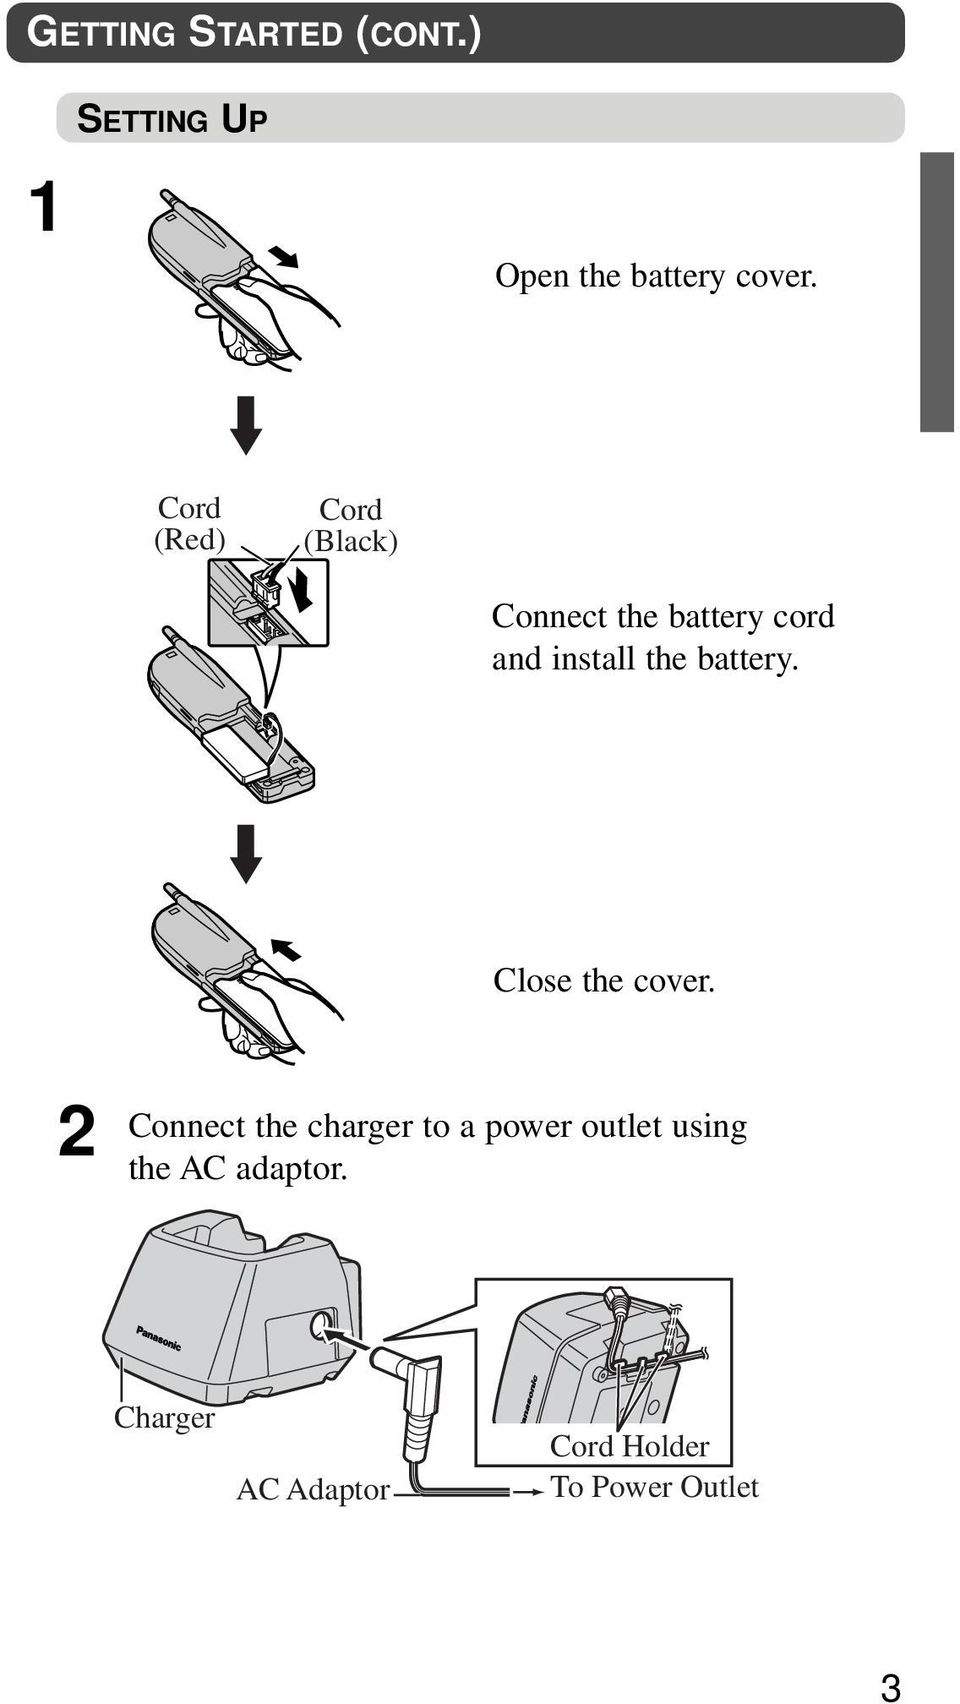 battery. Close the cover.